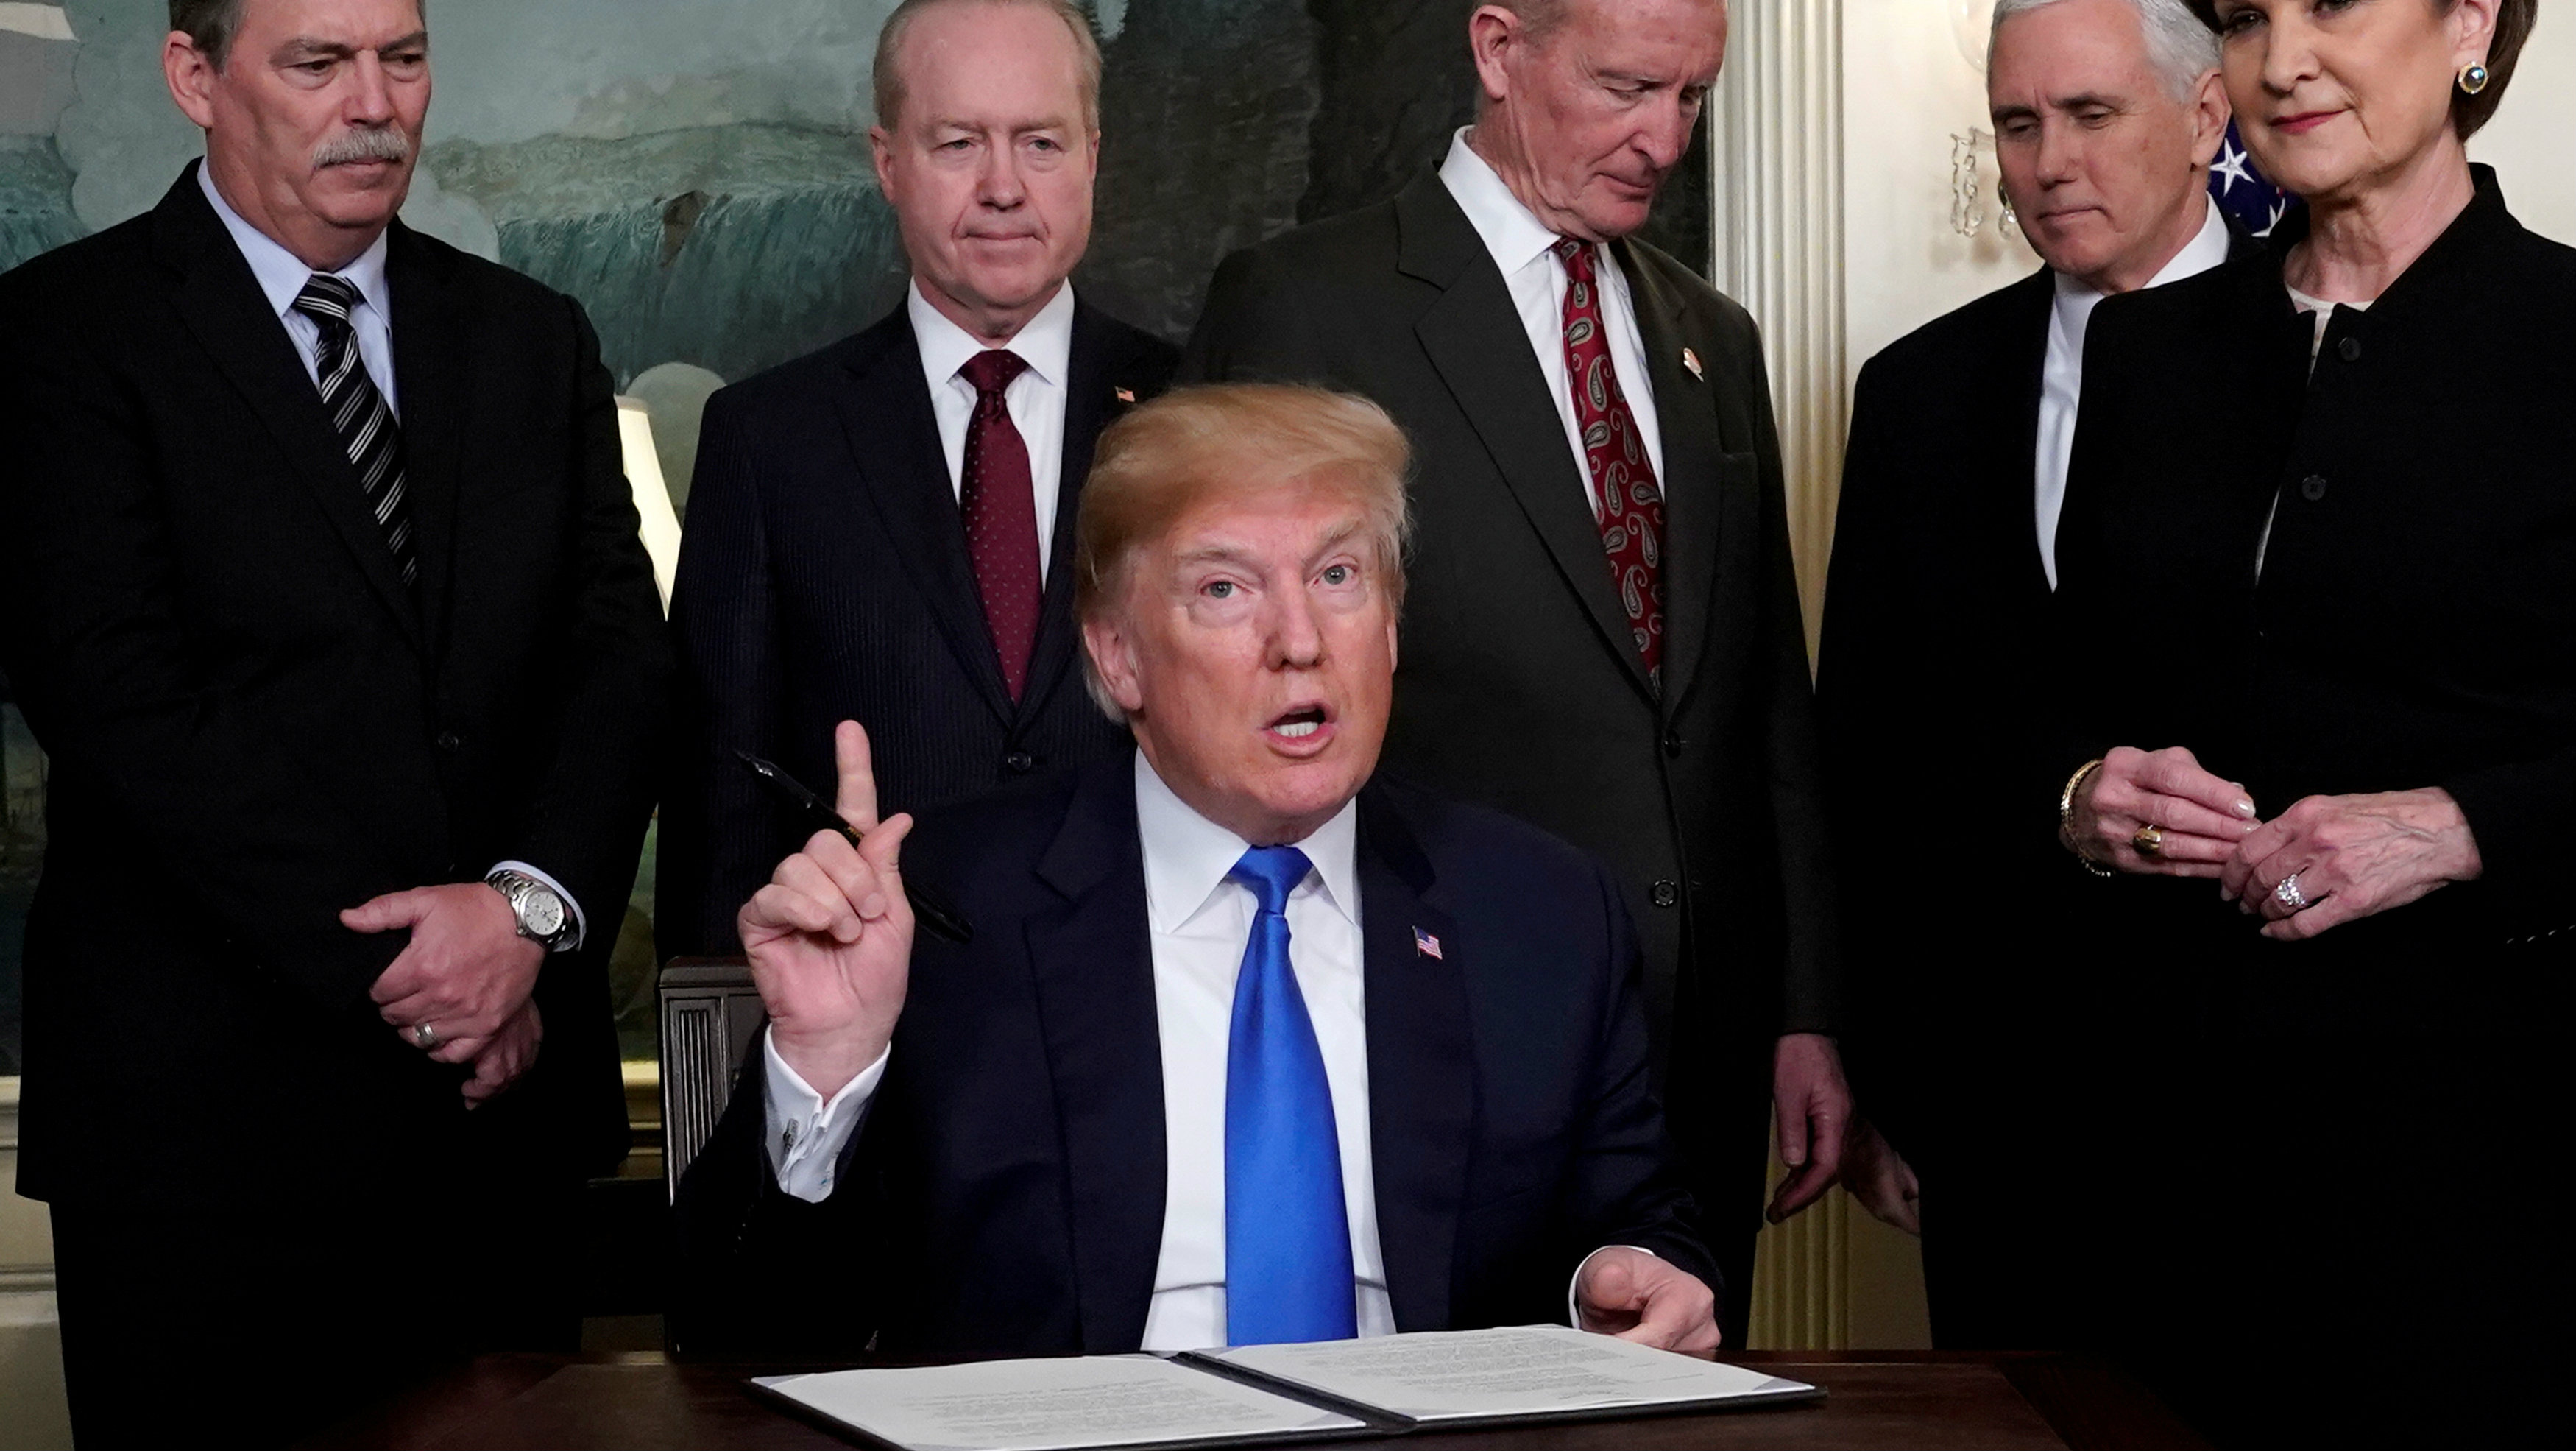 Donald Trump, surrounded by business leaders and administration officials, prepares to sign a memorandum on intellectual property tariffs